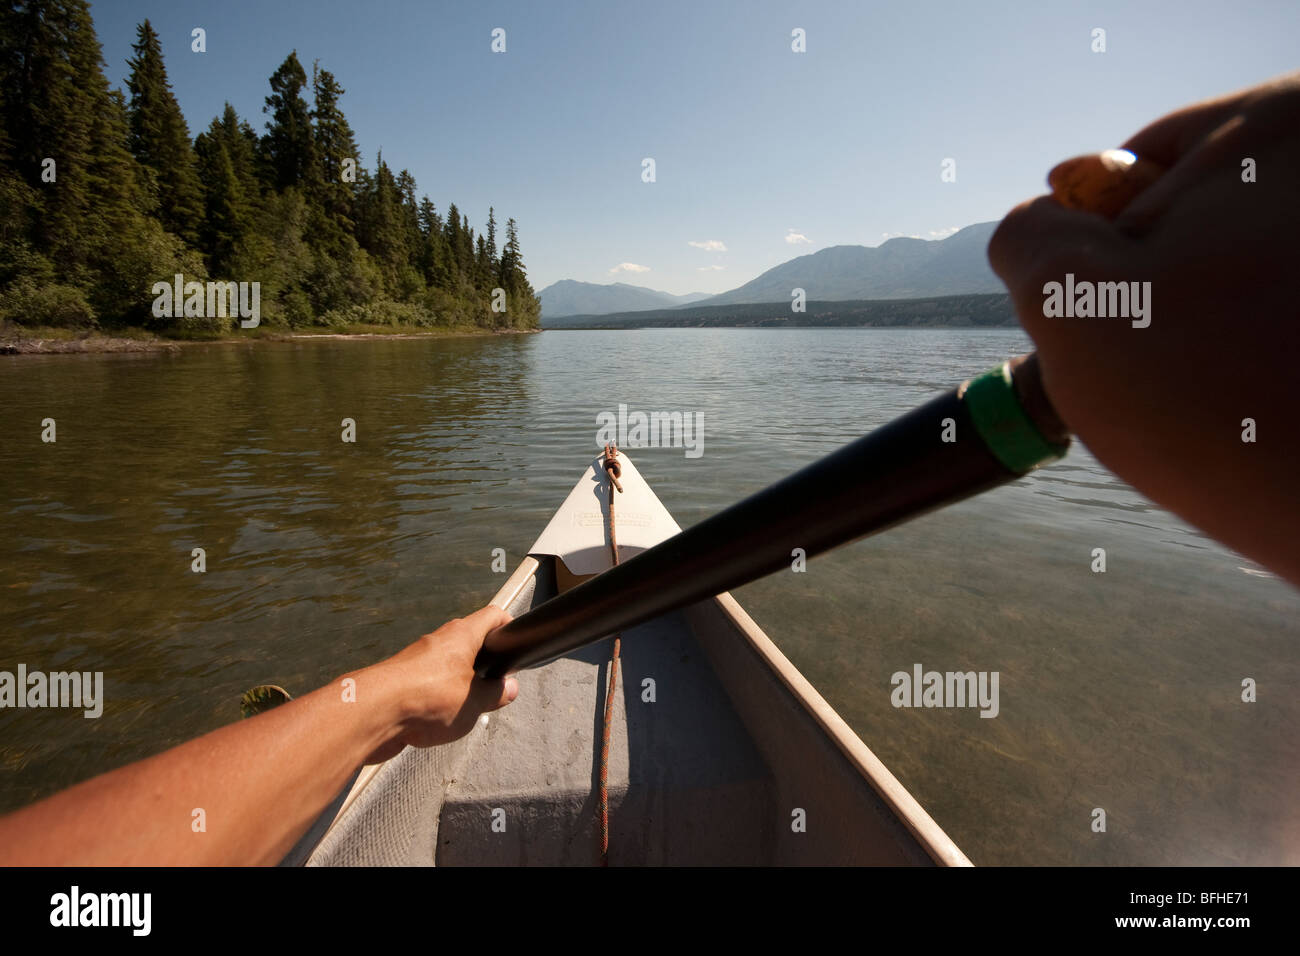 A canoe trip in Columbia Lake, the head waters of the Columbia River - Stock Image